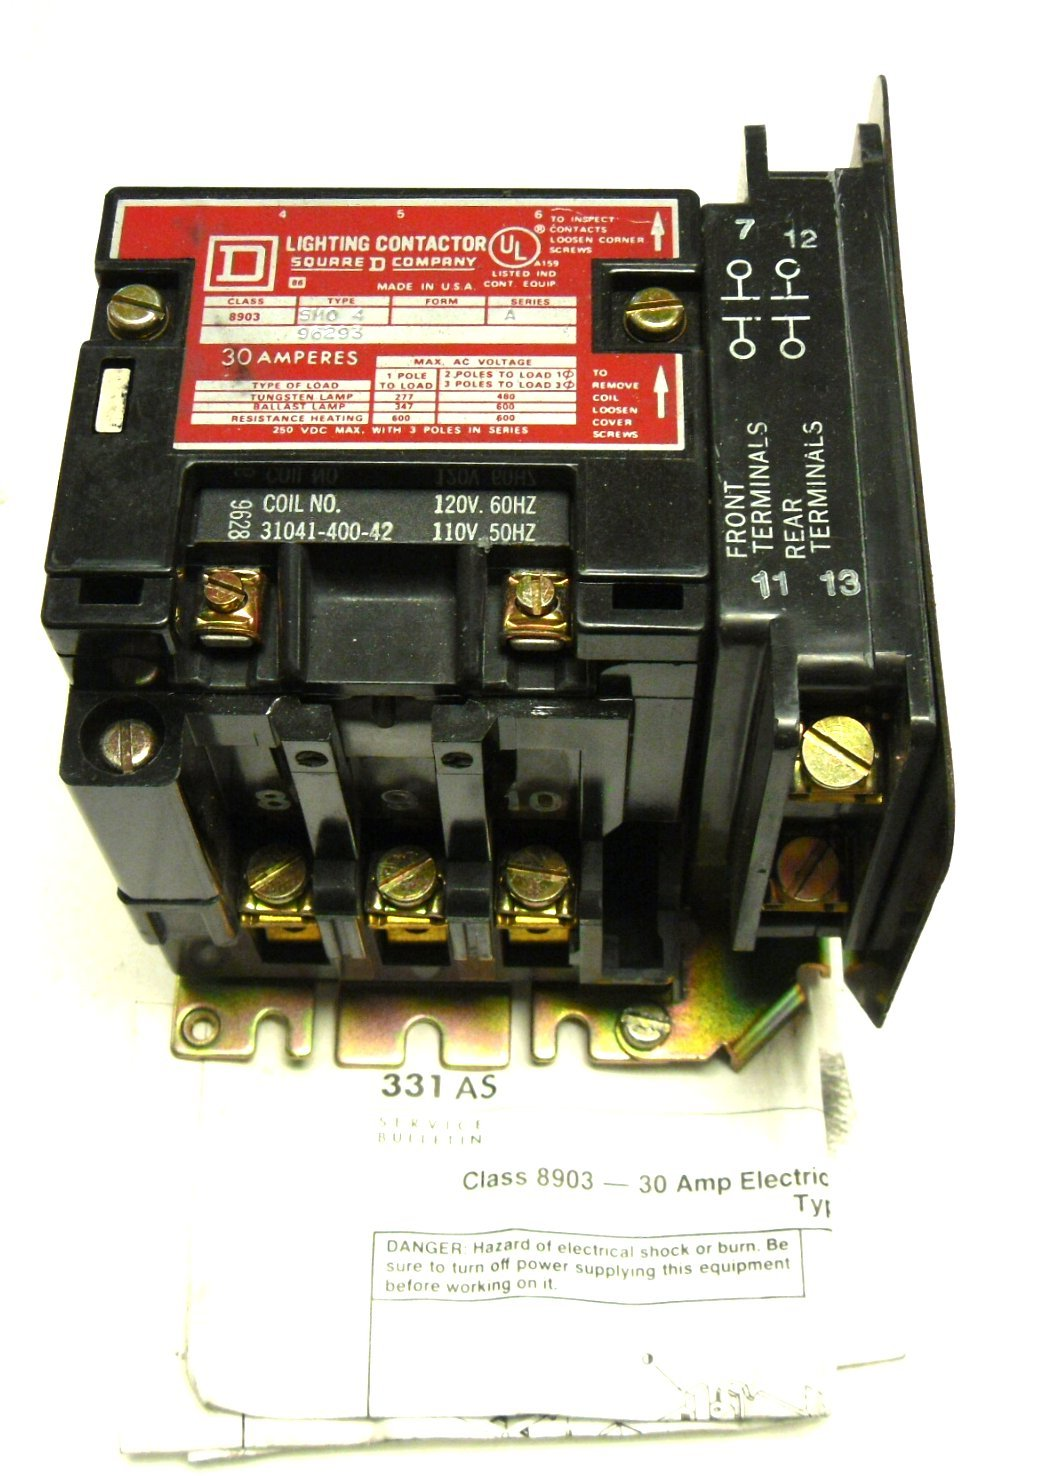 square d lighting contactor wiring new square d 8903sm04 lighting contactor series a 30 amp 8903 sm04  30 amp 8903 sm04